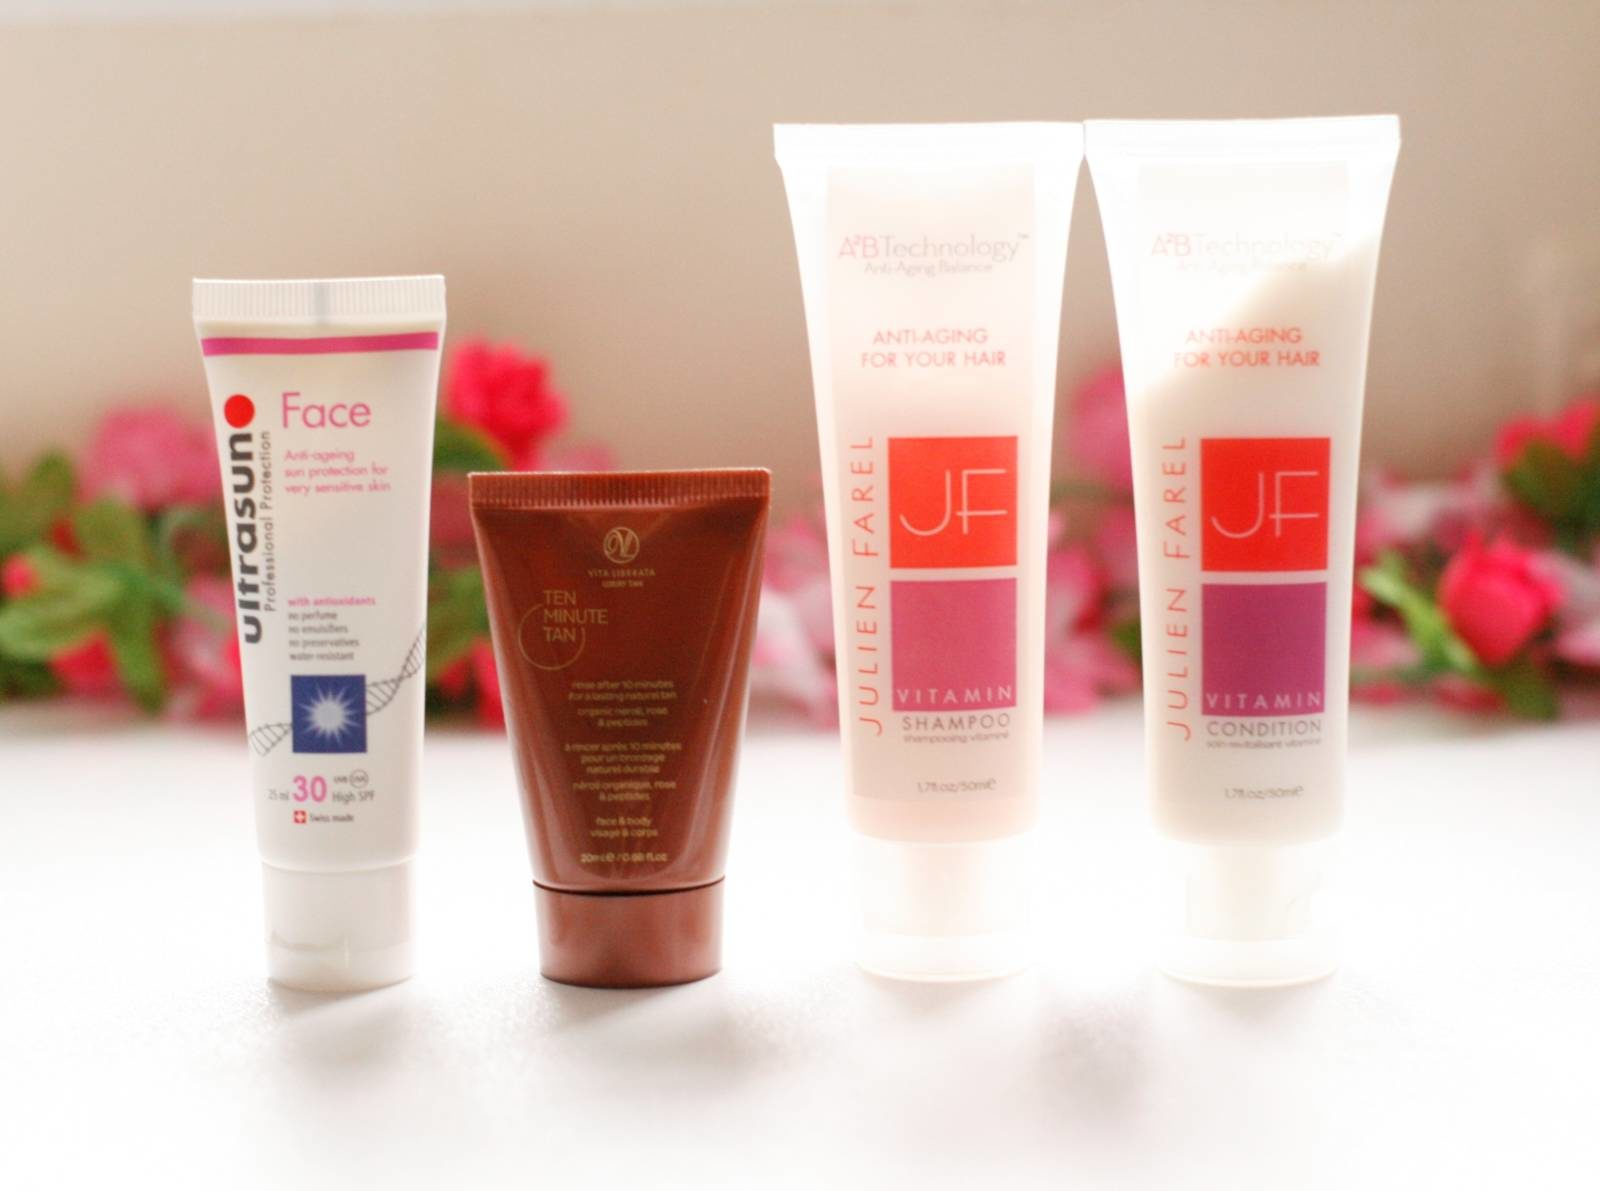 TiLi Beauty Box QVC Beauty May 2017 Hair and Body Contents Review